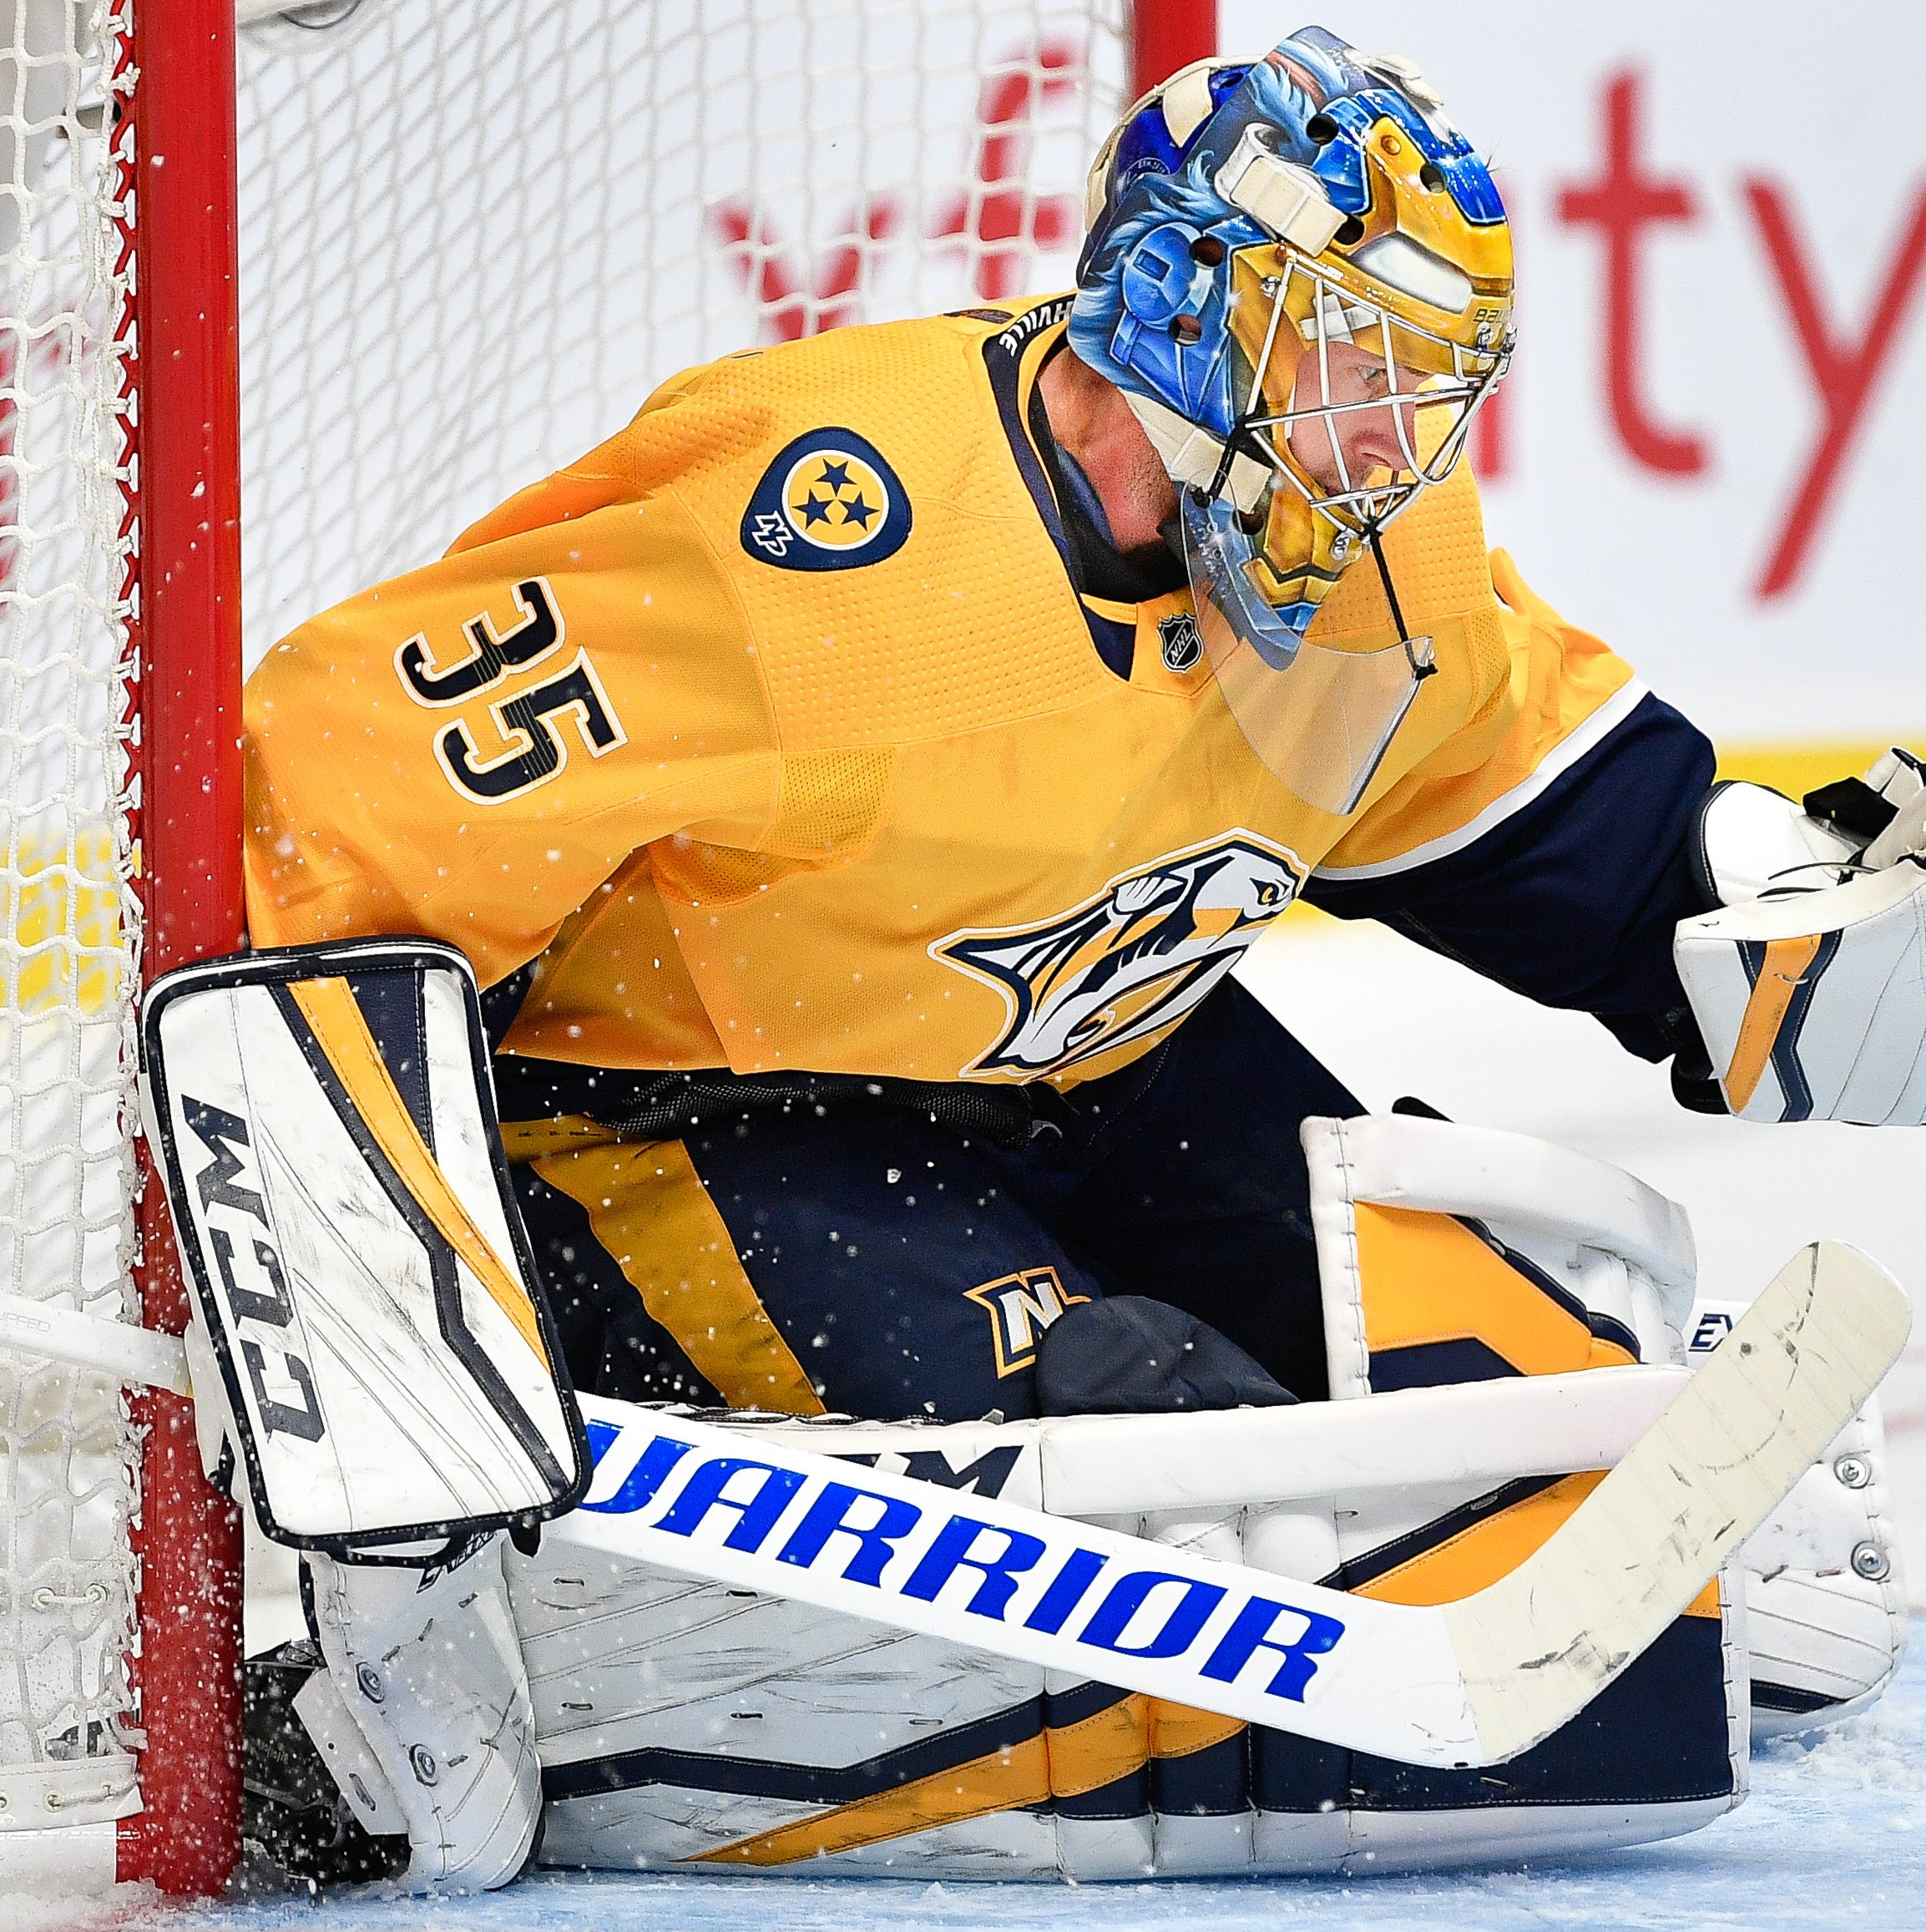 Predators goalie Pekka Rinne leaves game after collision during third period